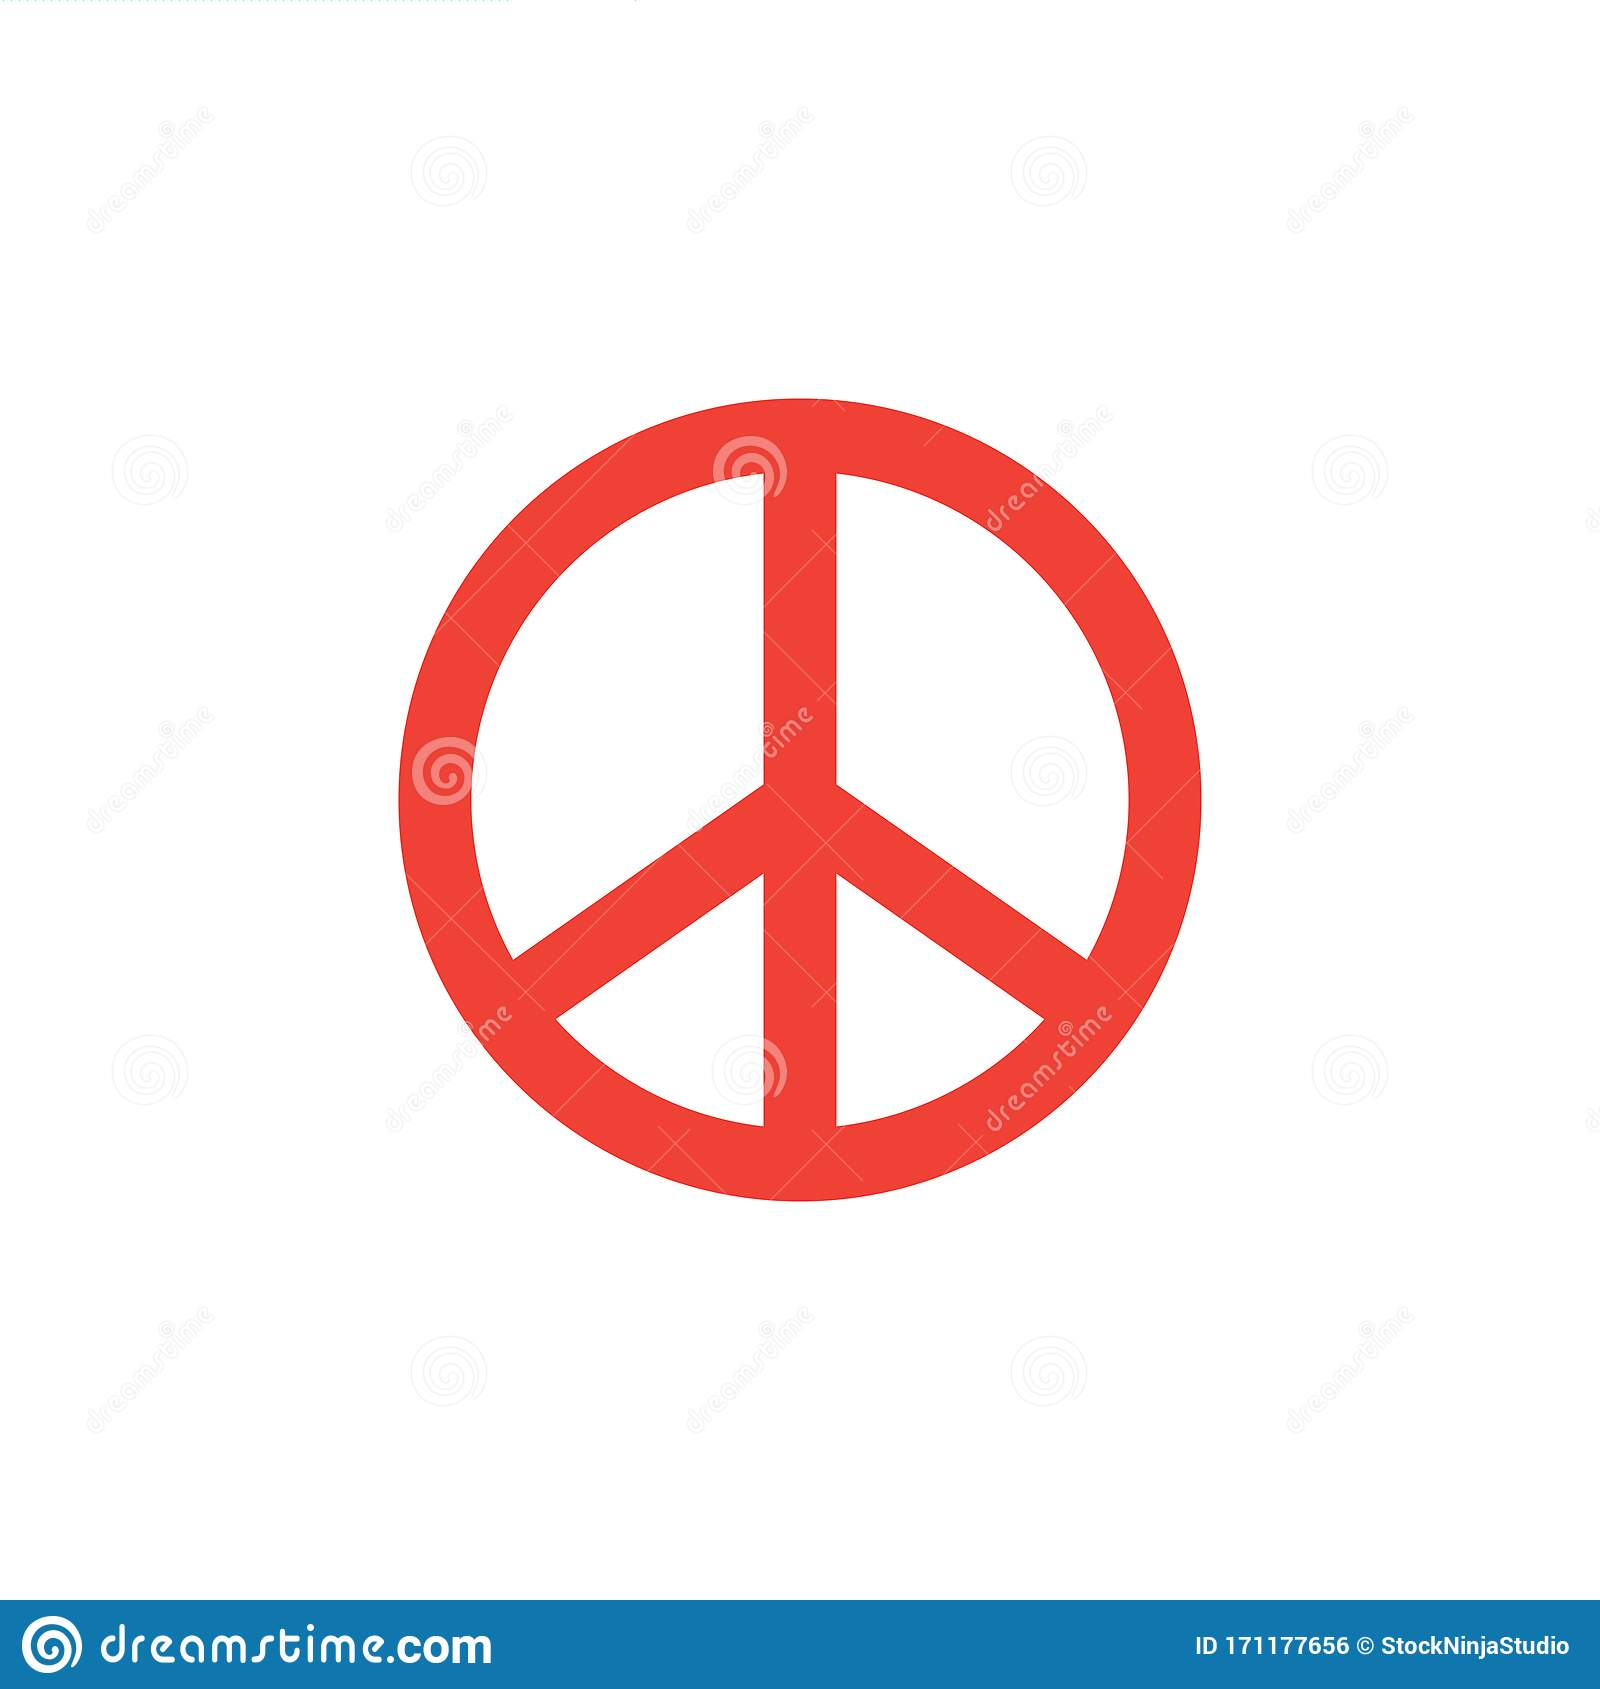 Peace Sign Stock Illustrations 95 721 Peace Sign Stock Illustrations Vectors Clipart Dreamstime